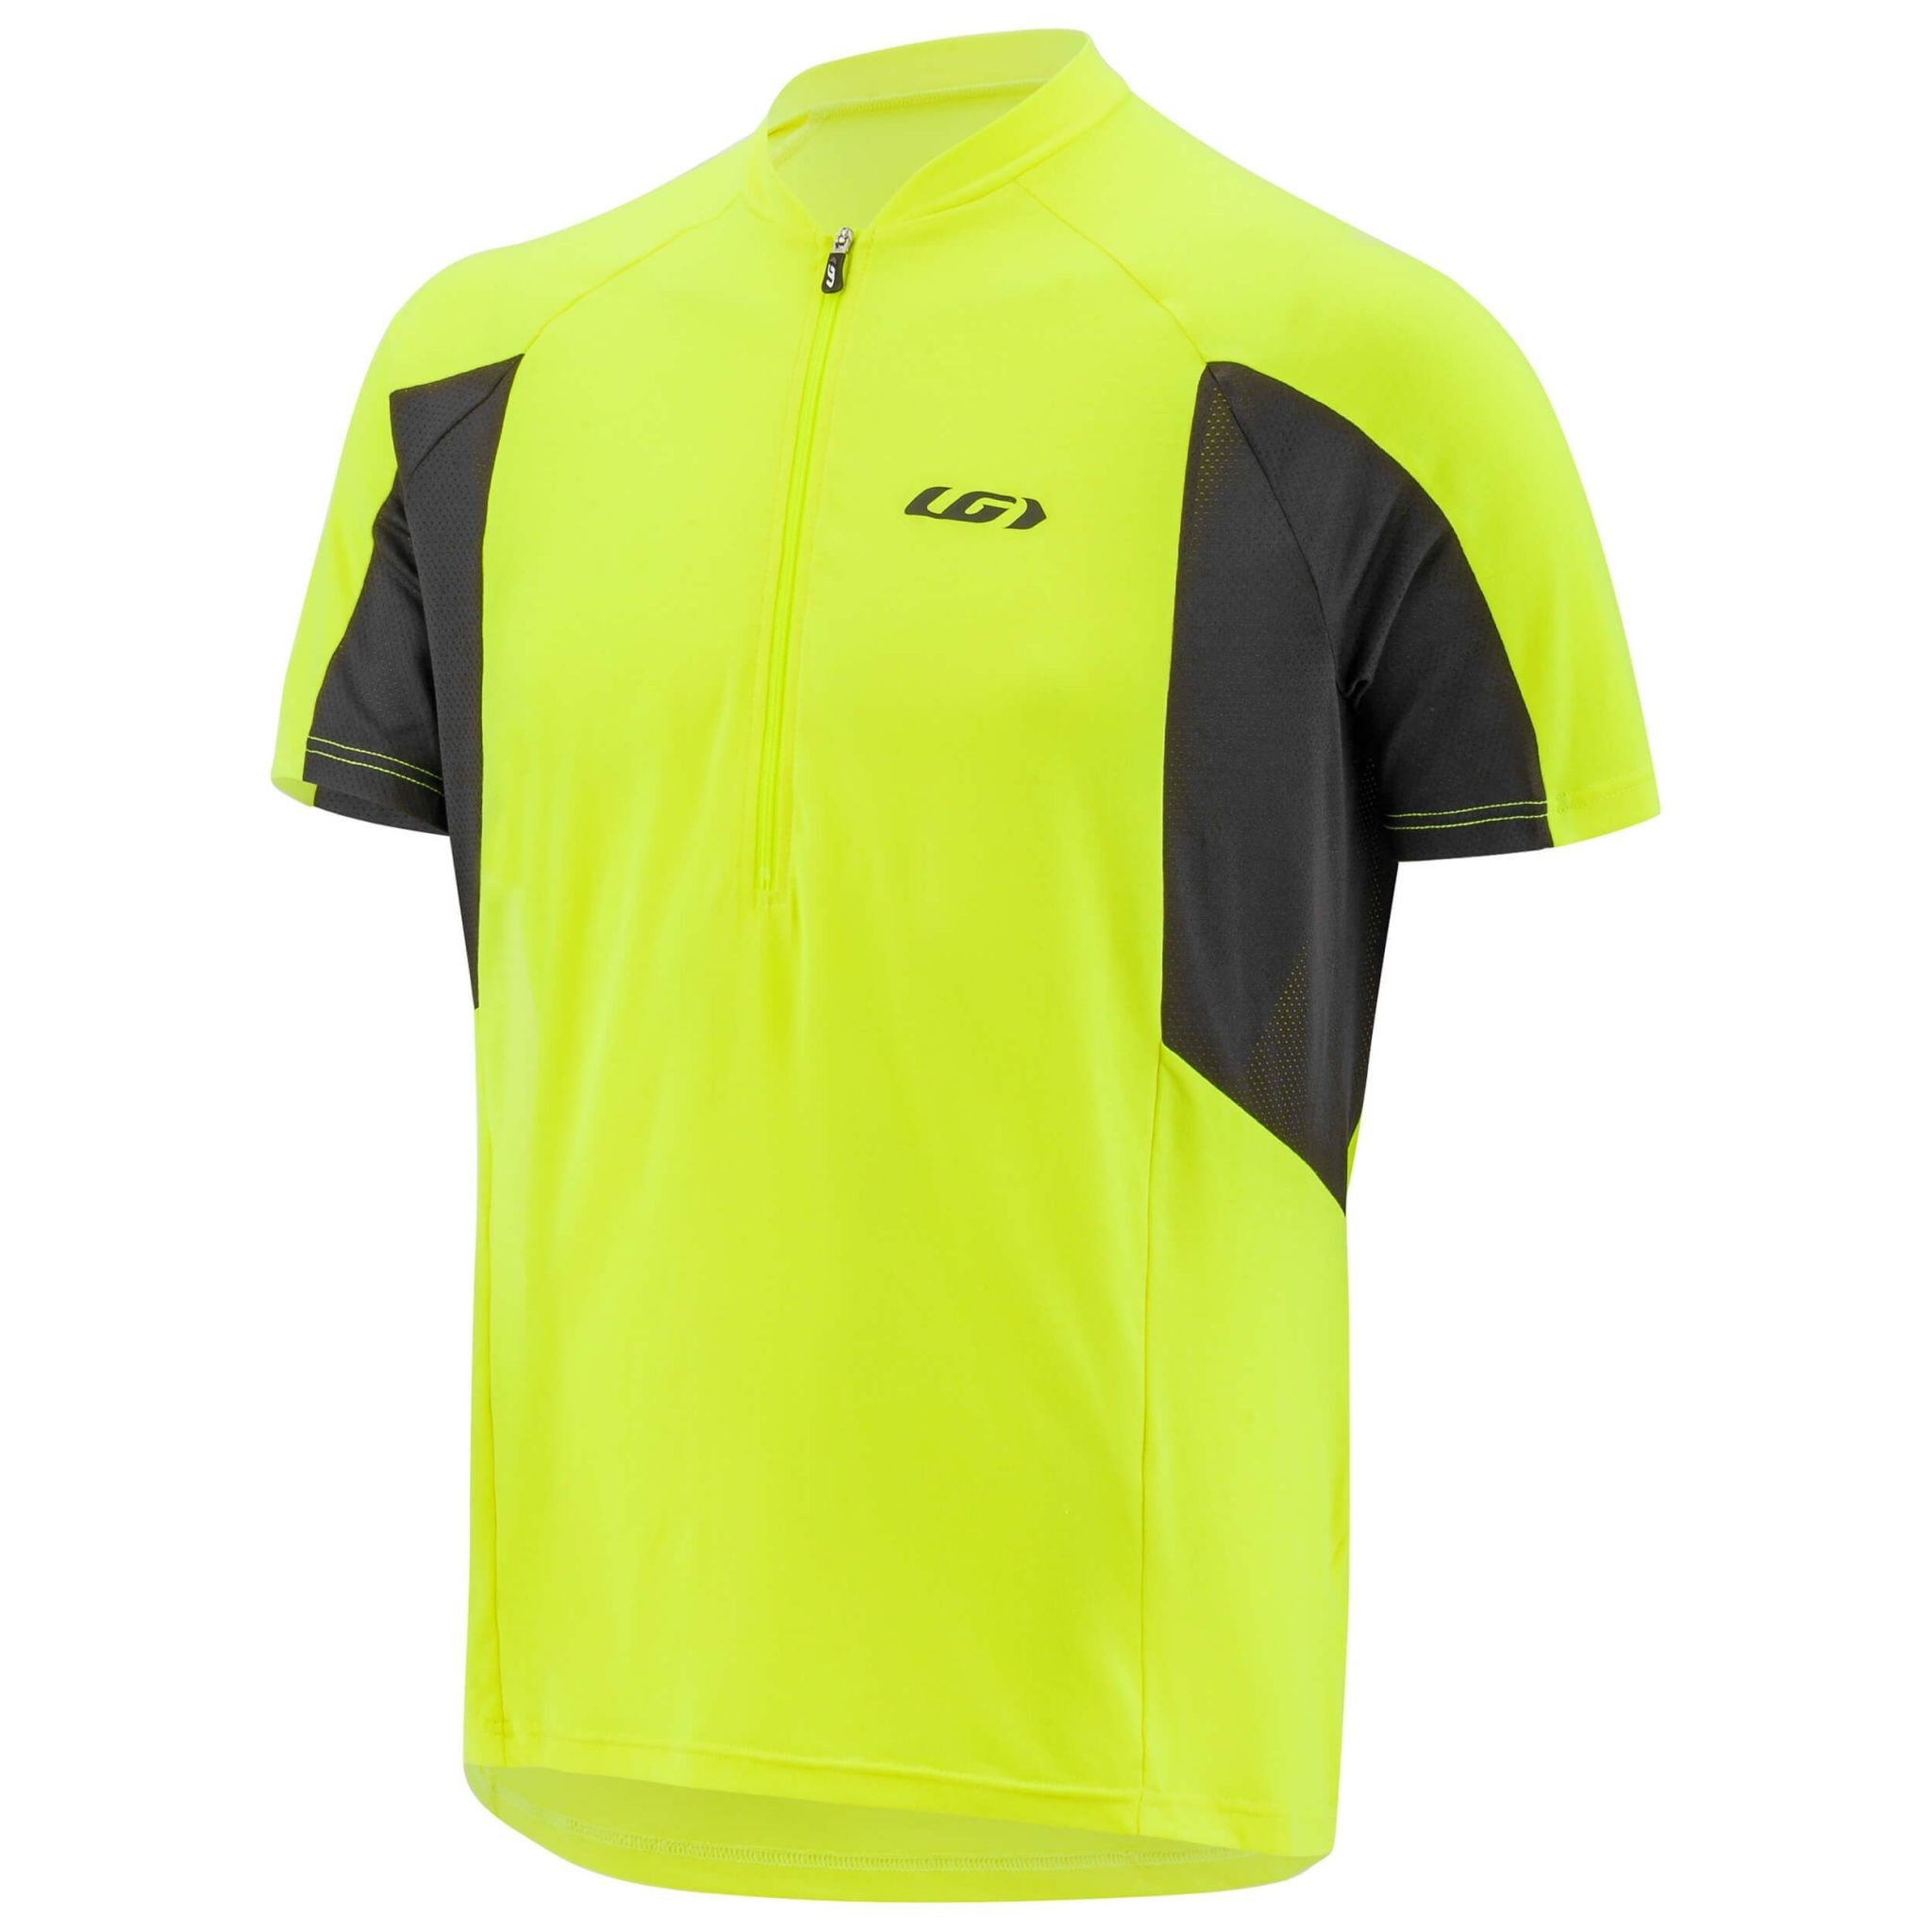 GARNEAU CONNECTION CYCLING JERSEY BRIGHT YELLOW